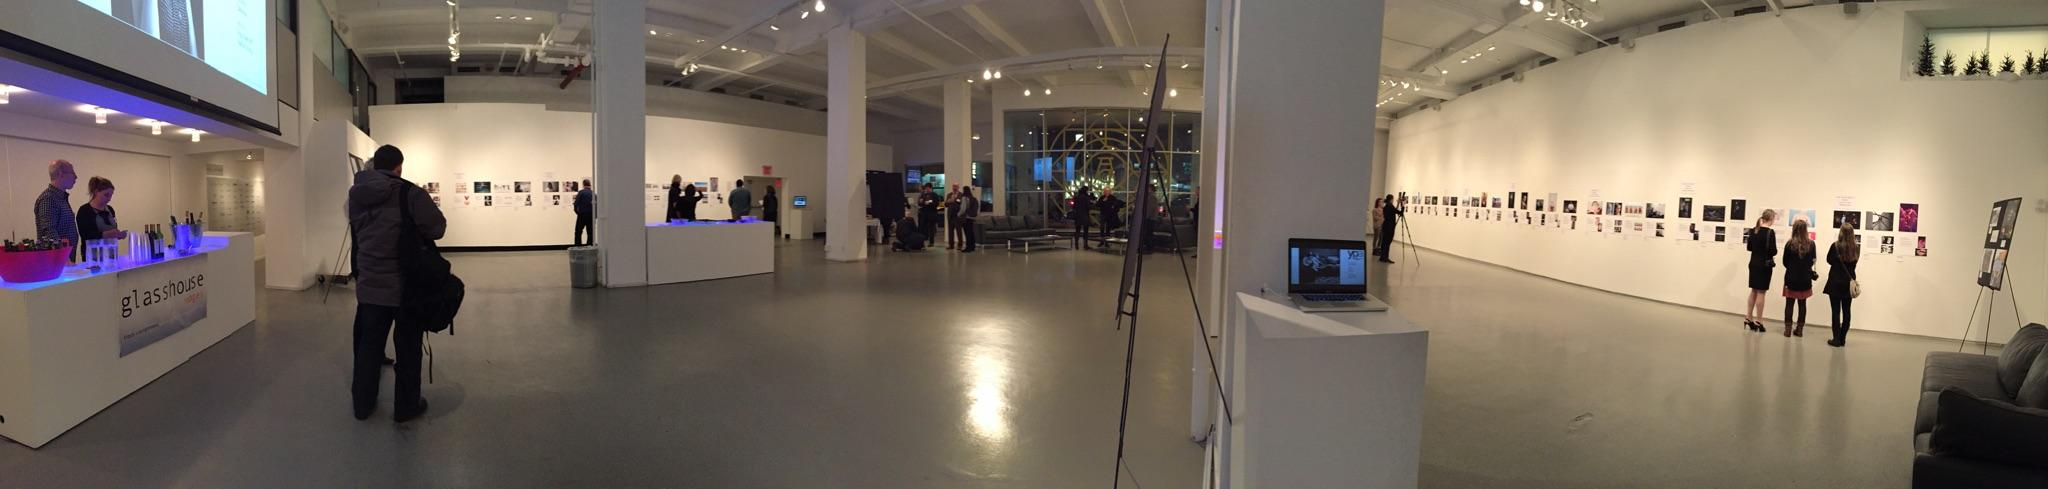 Before the doors opened for the event, this is the large space our work was displayed in. The room was entirely filled with other artists and guests by the end of the night.  (photo by Amy Schonauer)